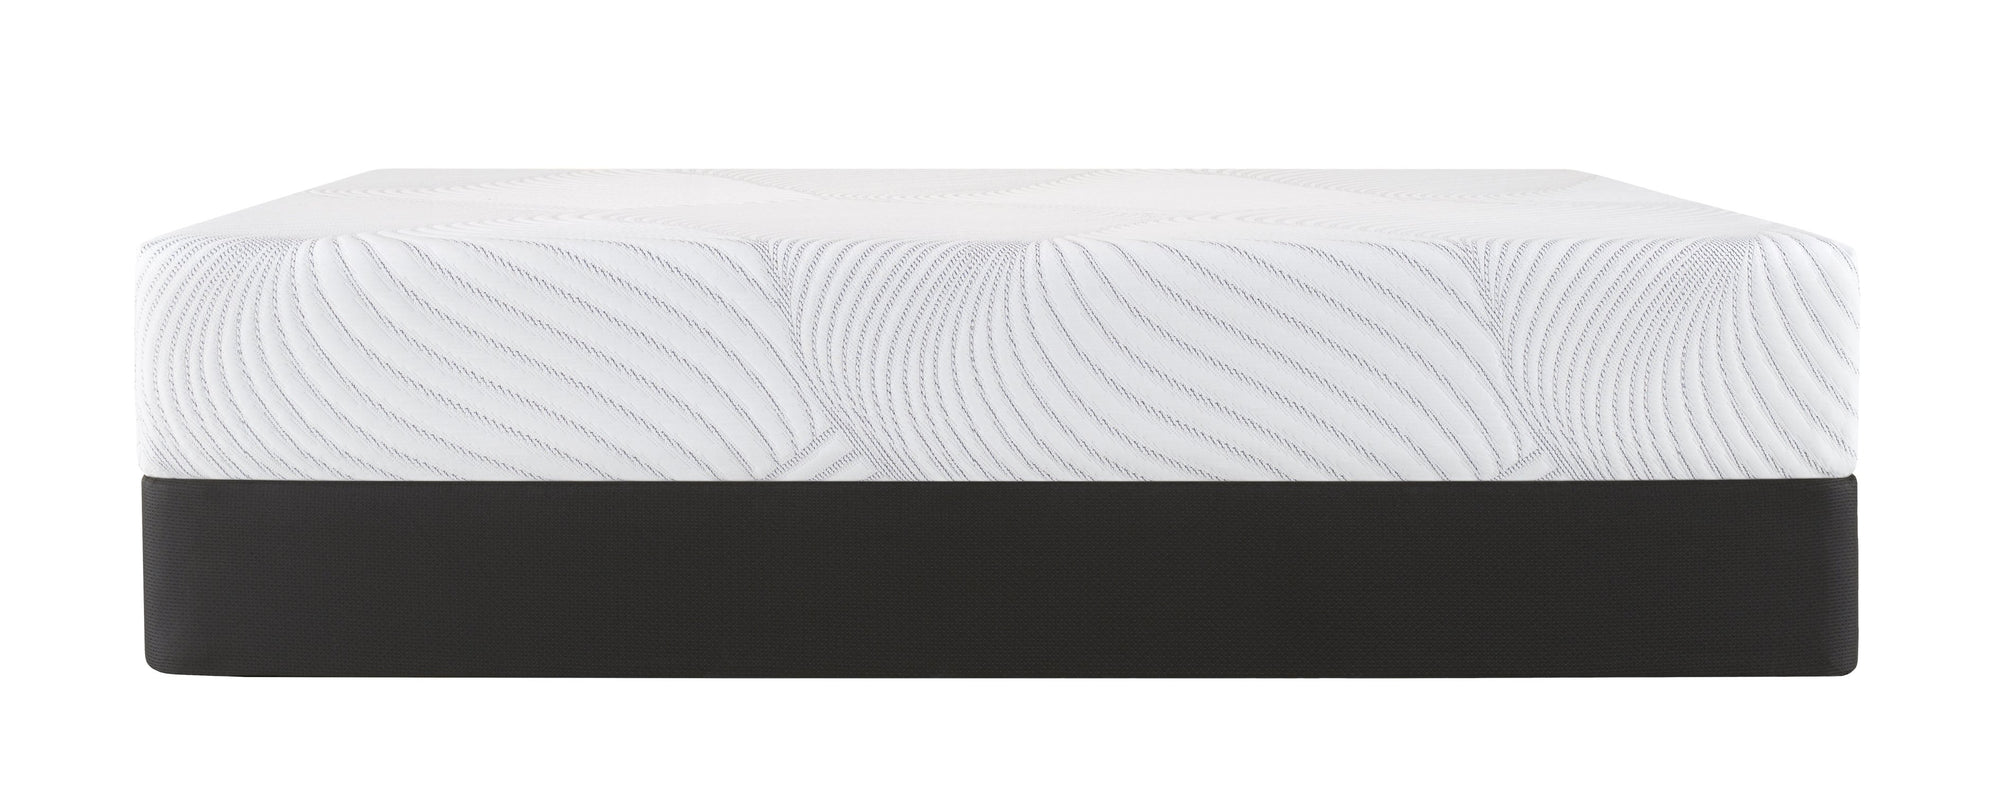 Sealy Conform Essential Firm Mattress Set